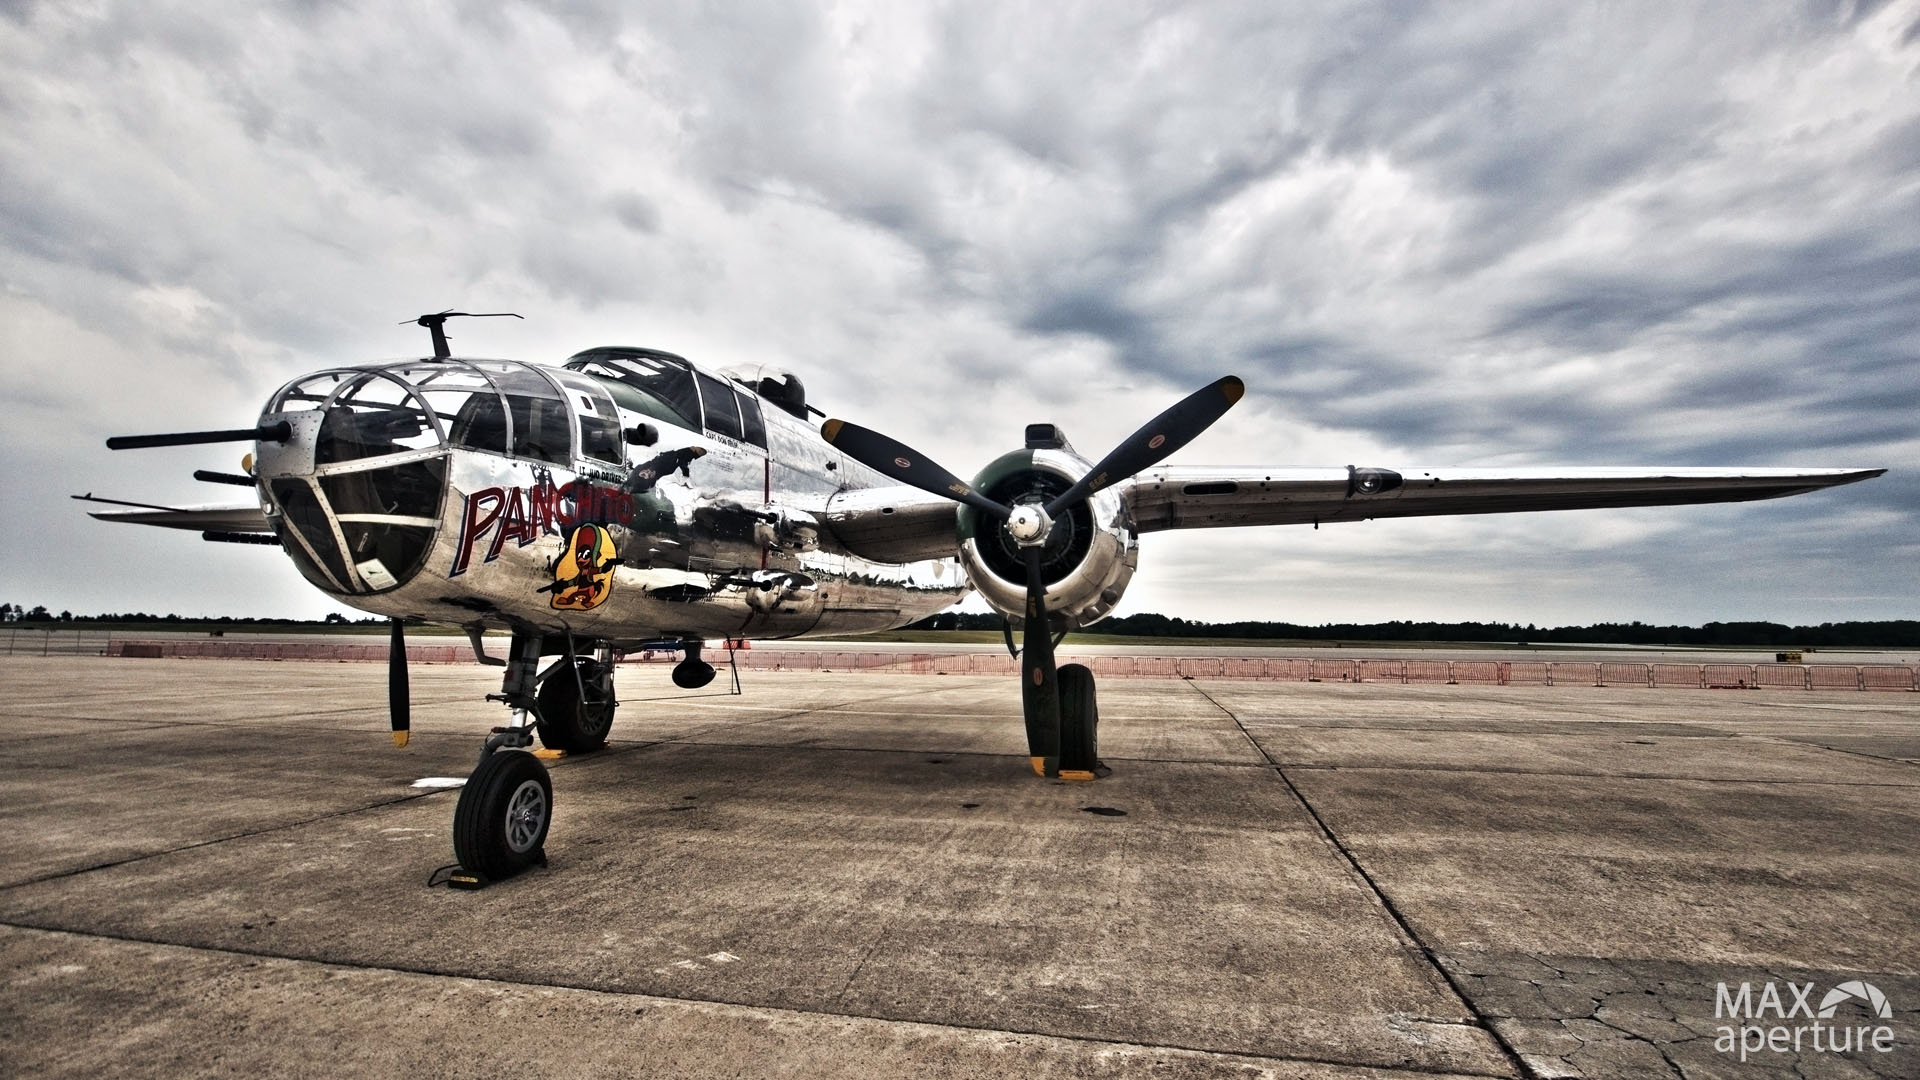 Event Coverage: DAV Flight Team's B-25J 'Panchito'